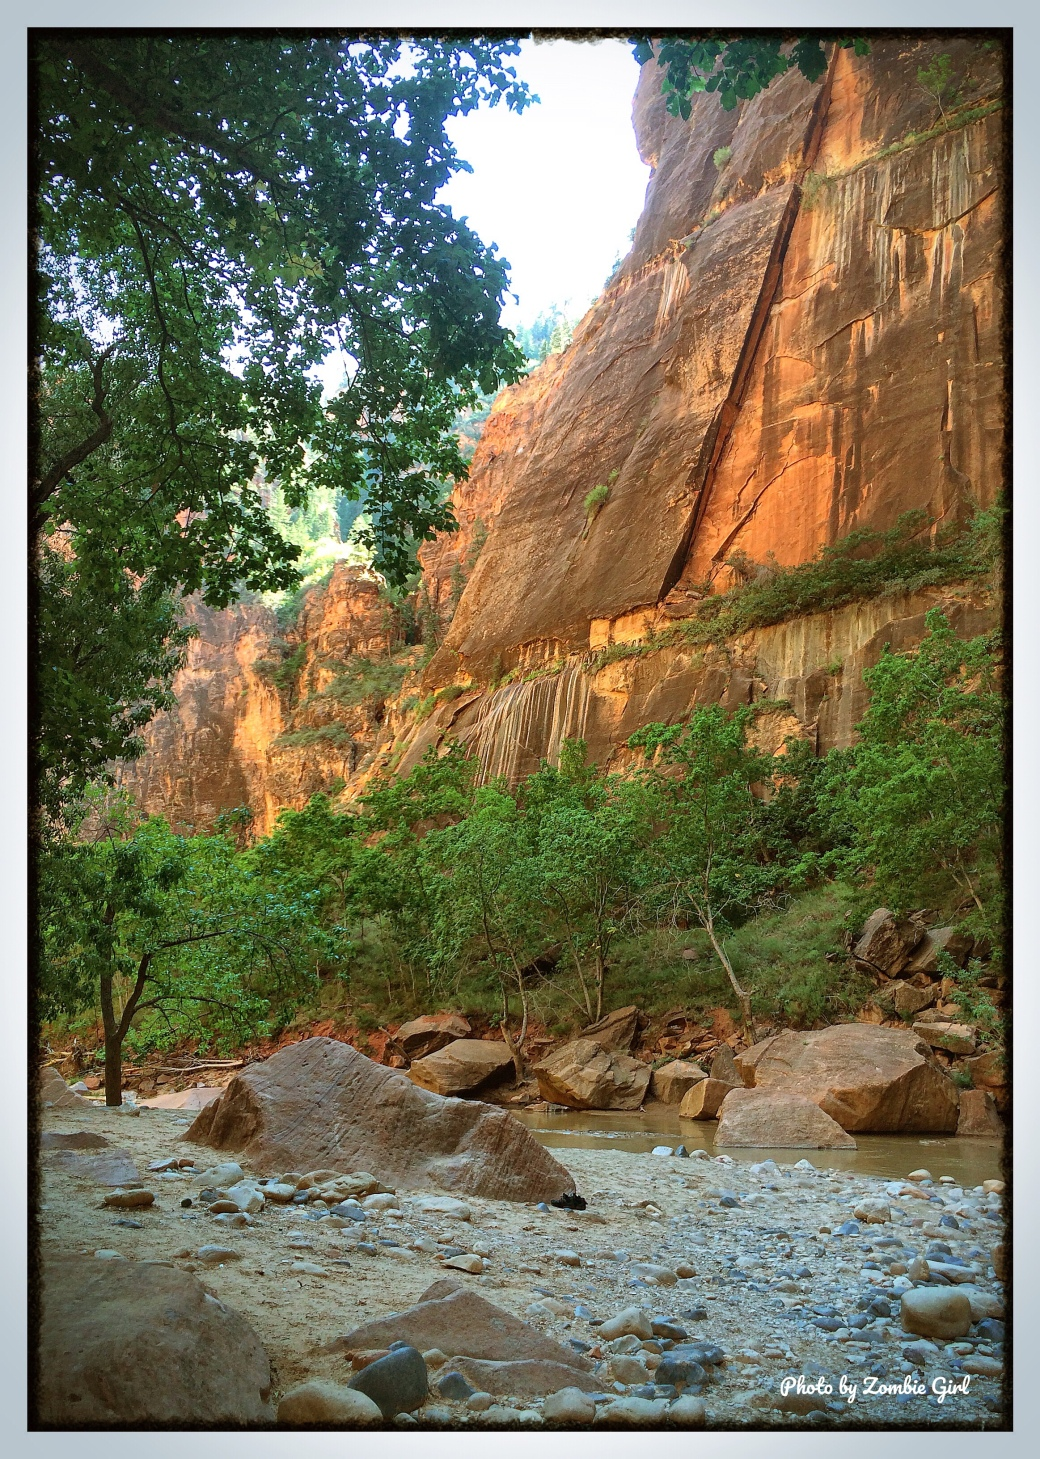 The rocky terrain of Zion meant that some sturdy ankle support was essential!